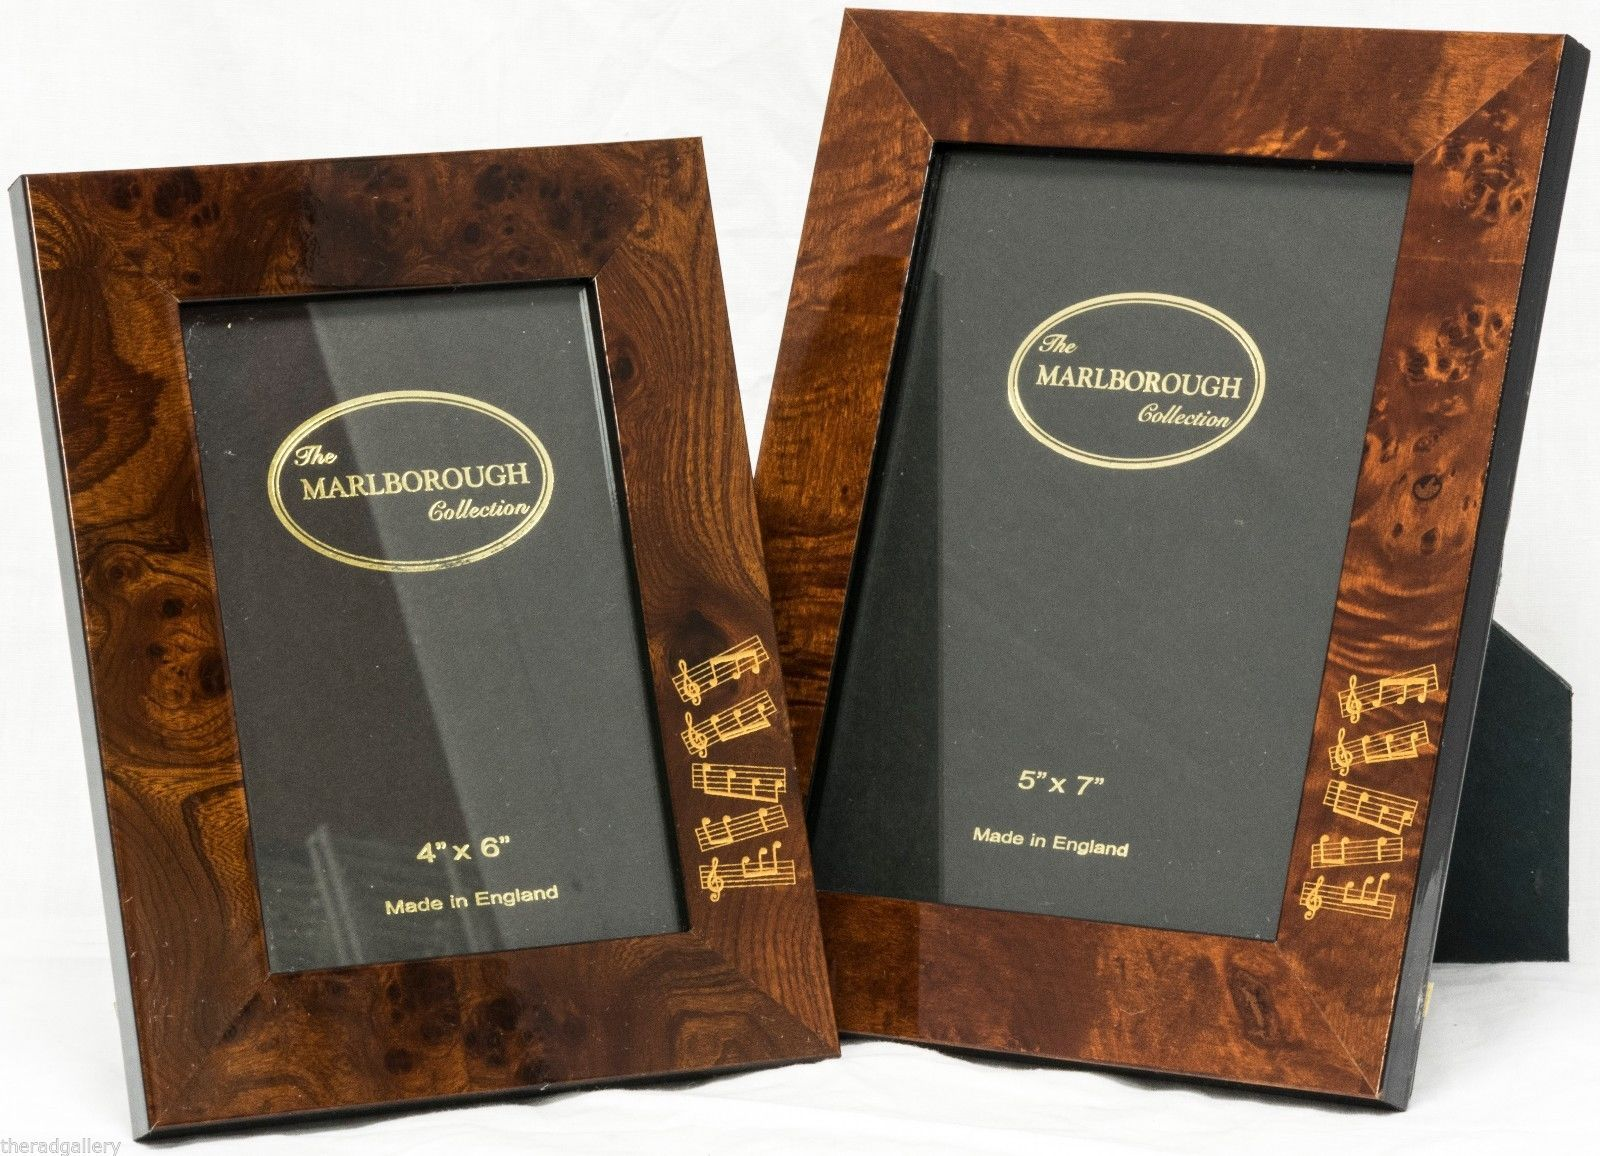 2 New Marlborough Collection Burl Wood Picture Photo Frames w Music Note Motif | eBay